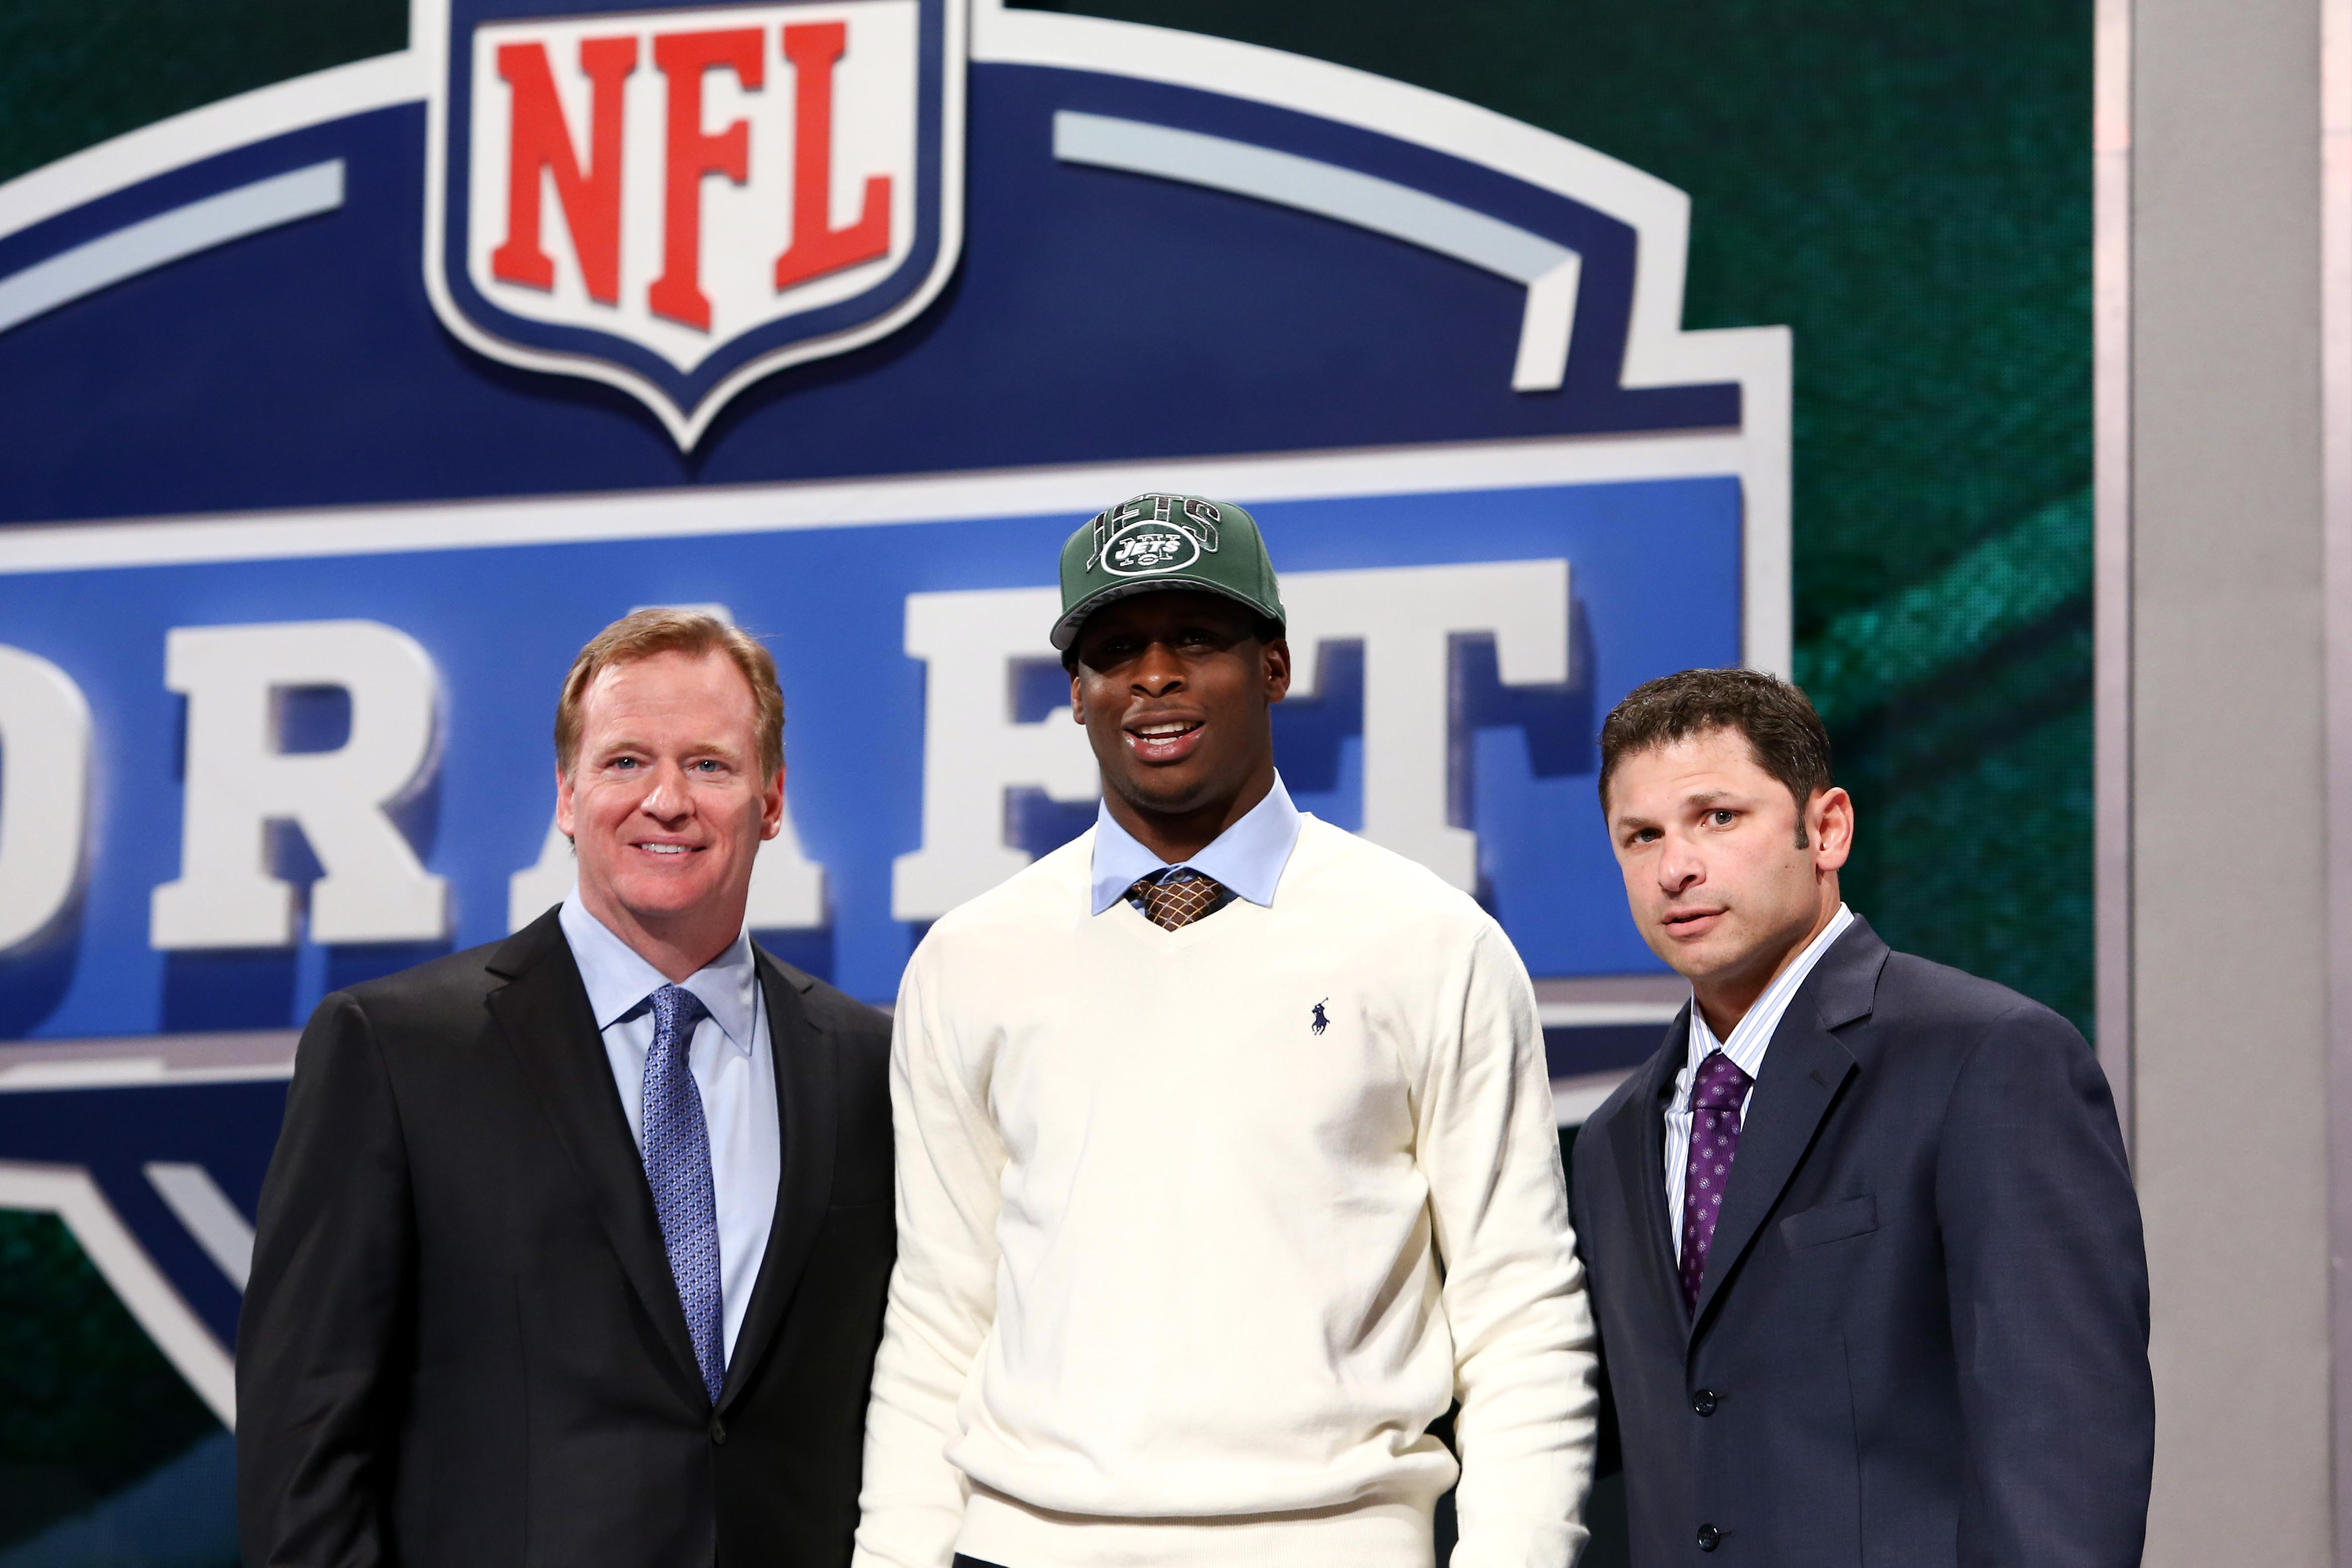 Roger Goodell (left) and former NFL player Wayne Chrebet (right) introduce Geno Smith. (USA TODAY Sports)